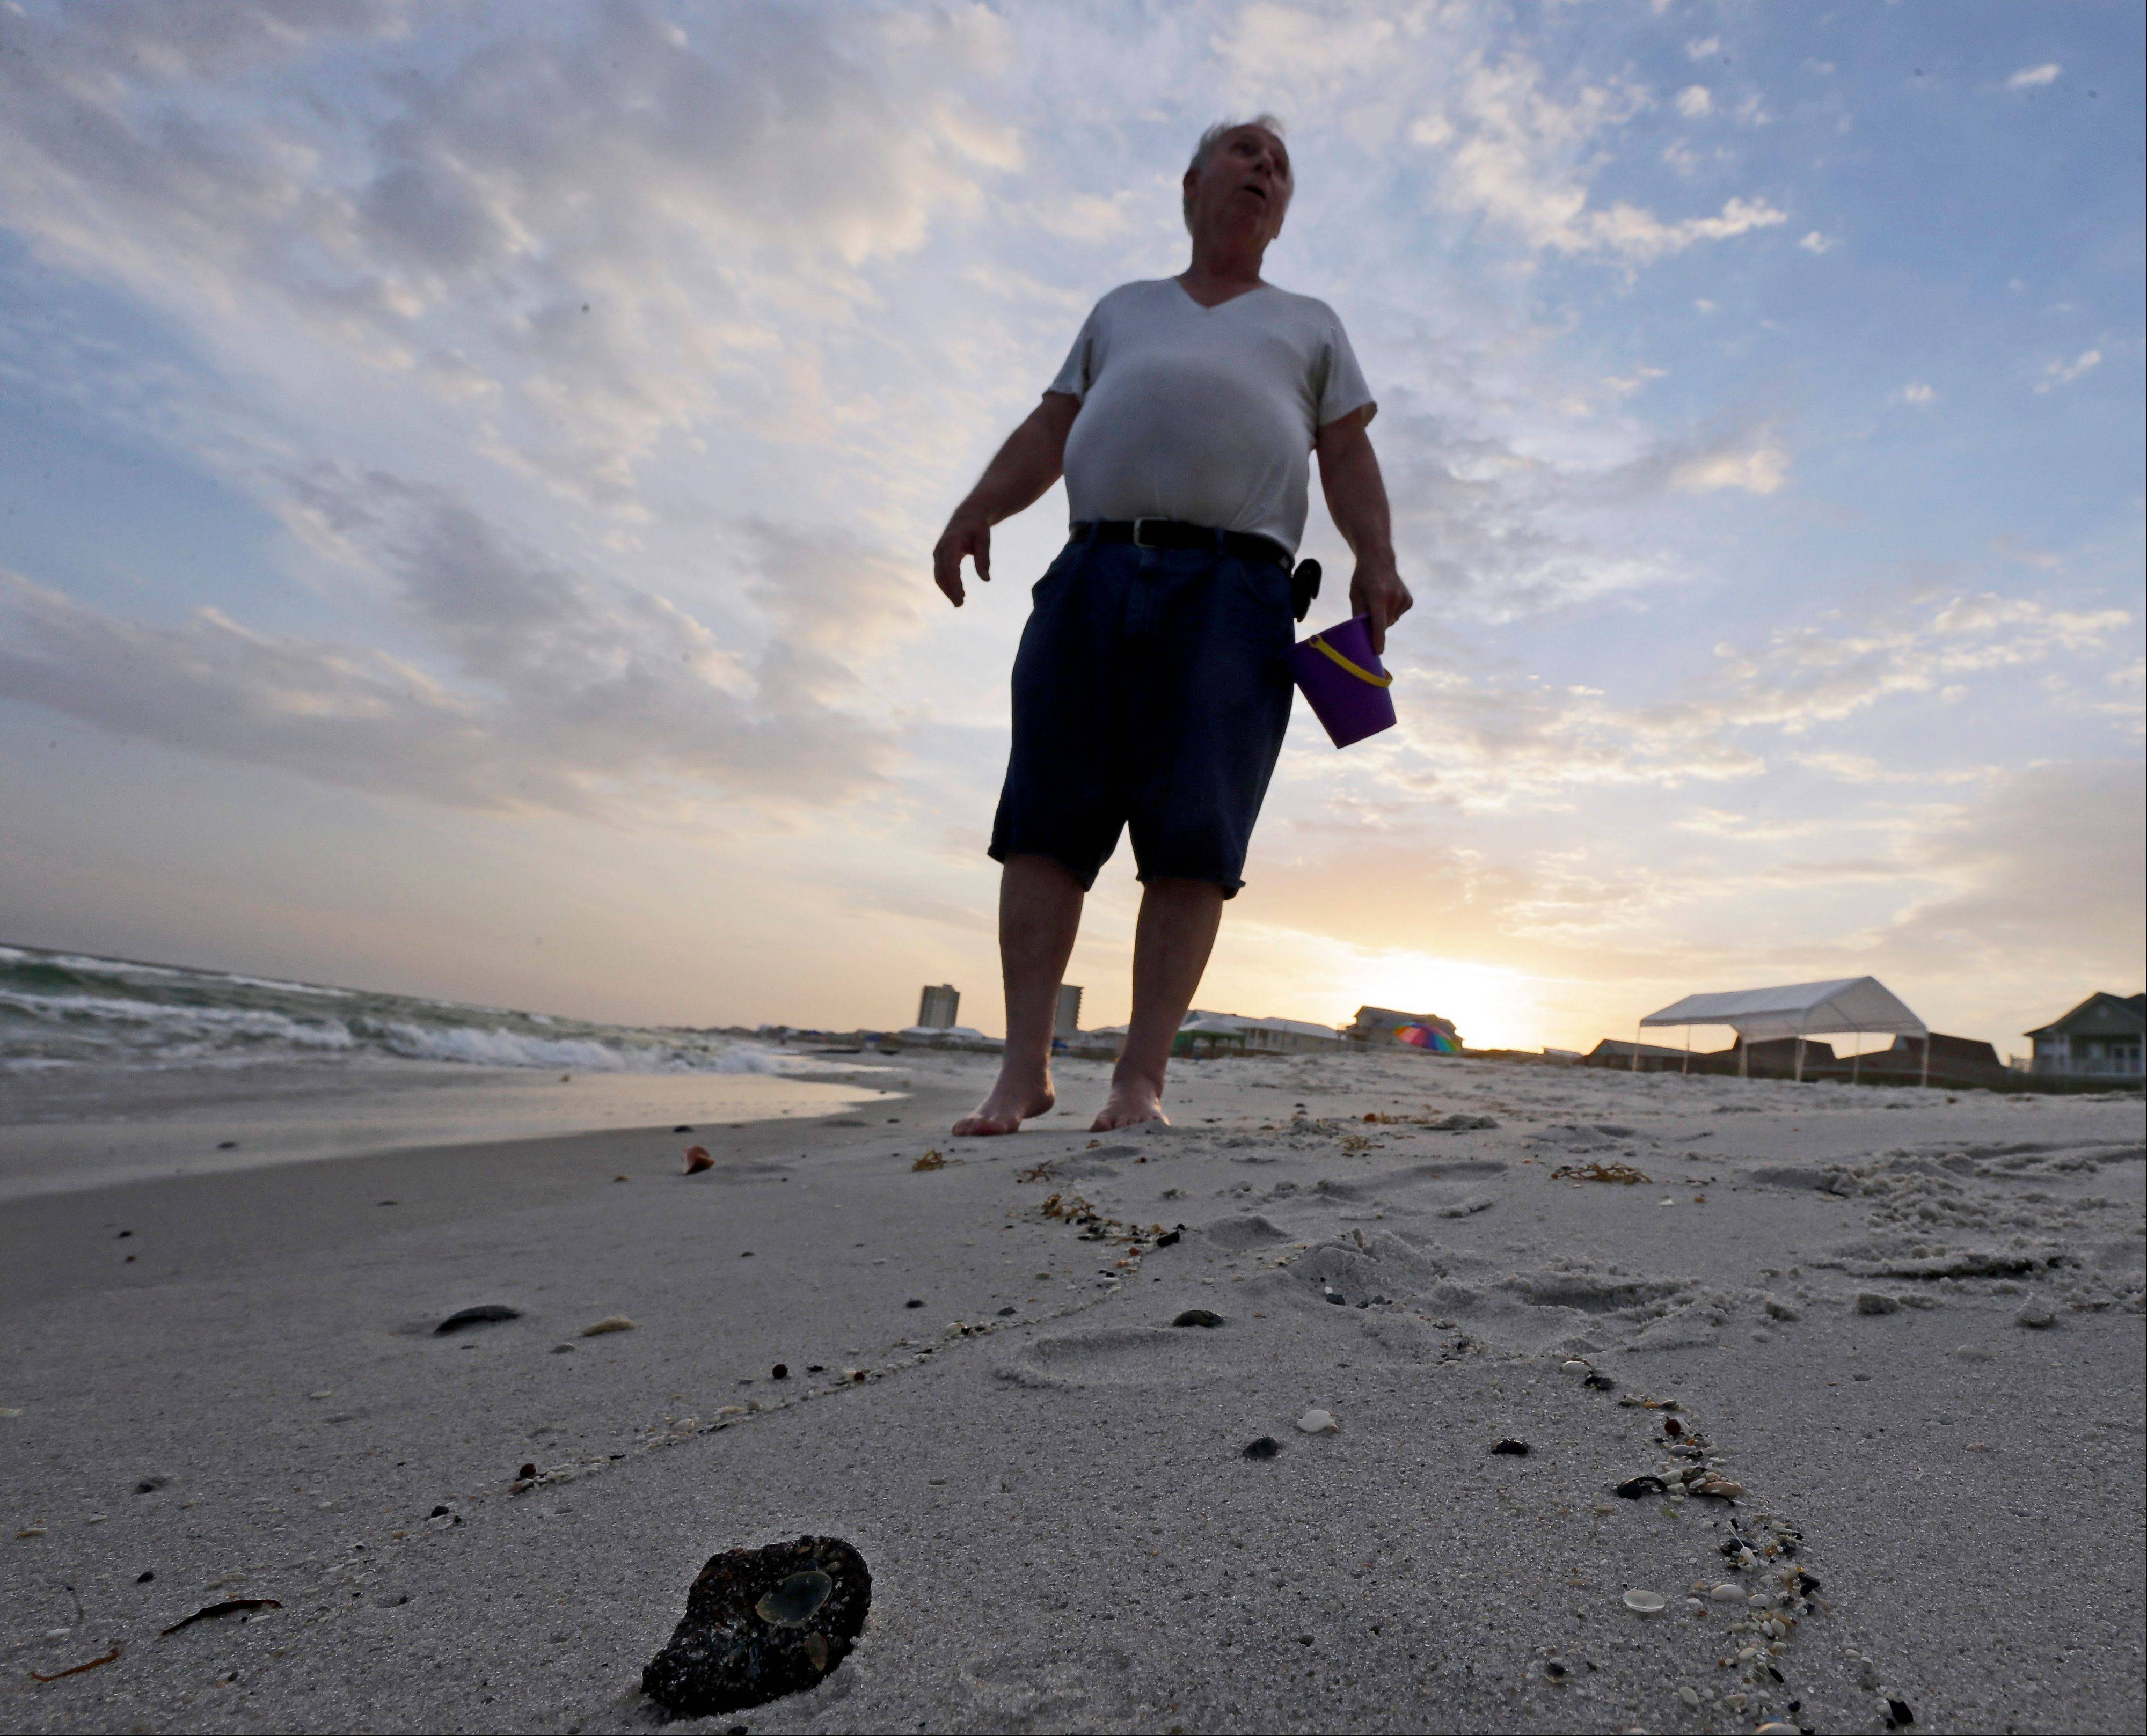 A small shell is embedded in a tar ball on the beach in Gulf Shores, Ala. After three years and $14 billion worth of work following the BP oil spill in the Gulf of Mexico, the petroleum giant and the Coast Guard say it's time to end extraordinary cleanup operations in Alabama, Florida and Mississippi.